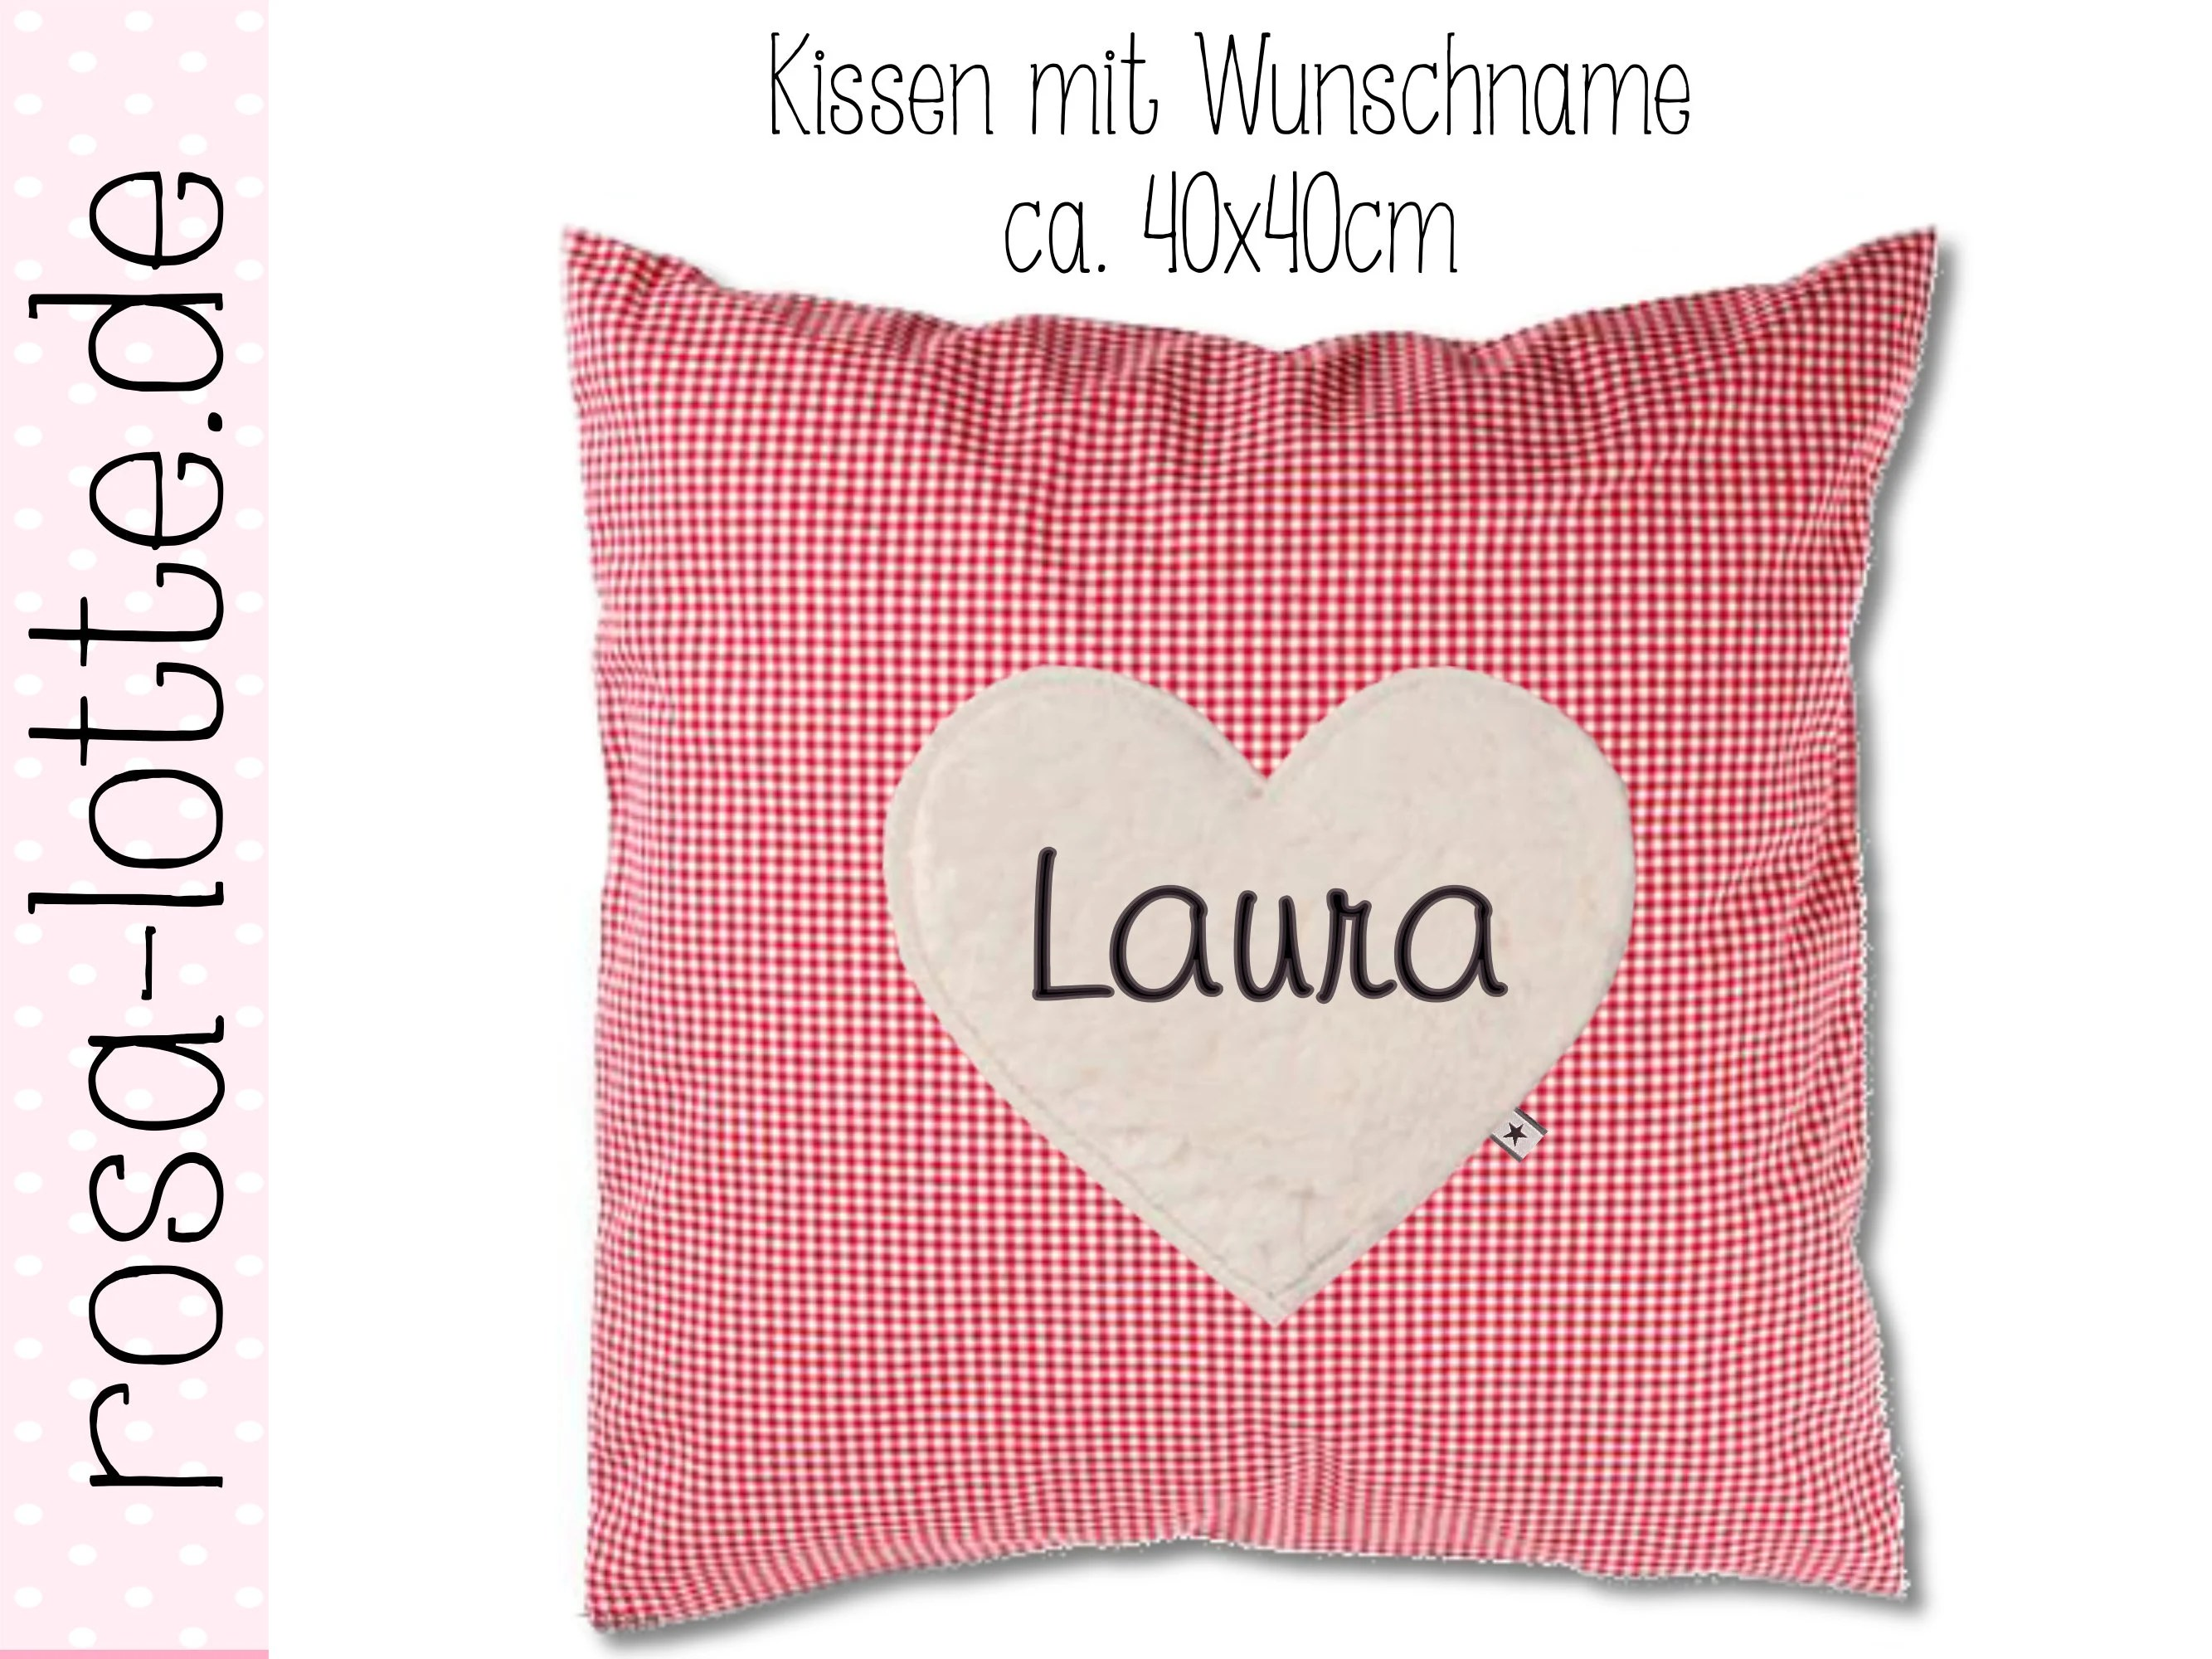 Kopfkissen 40x40 Pillow 40 X 40 Cm Vichy Red Wish Name